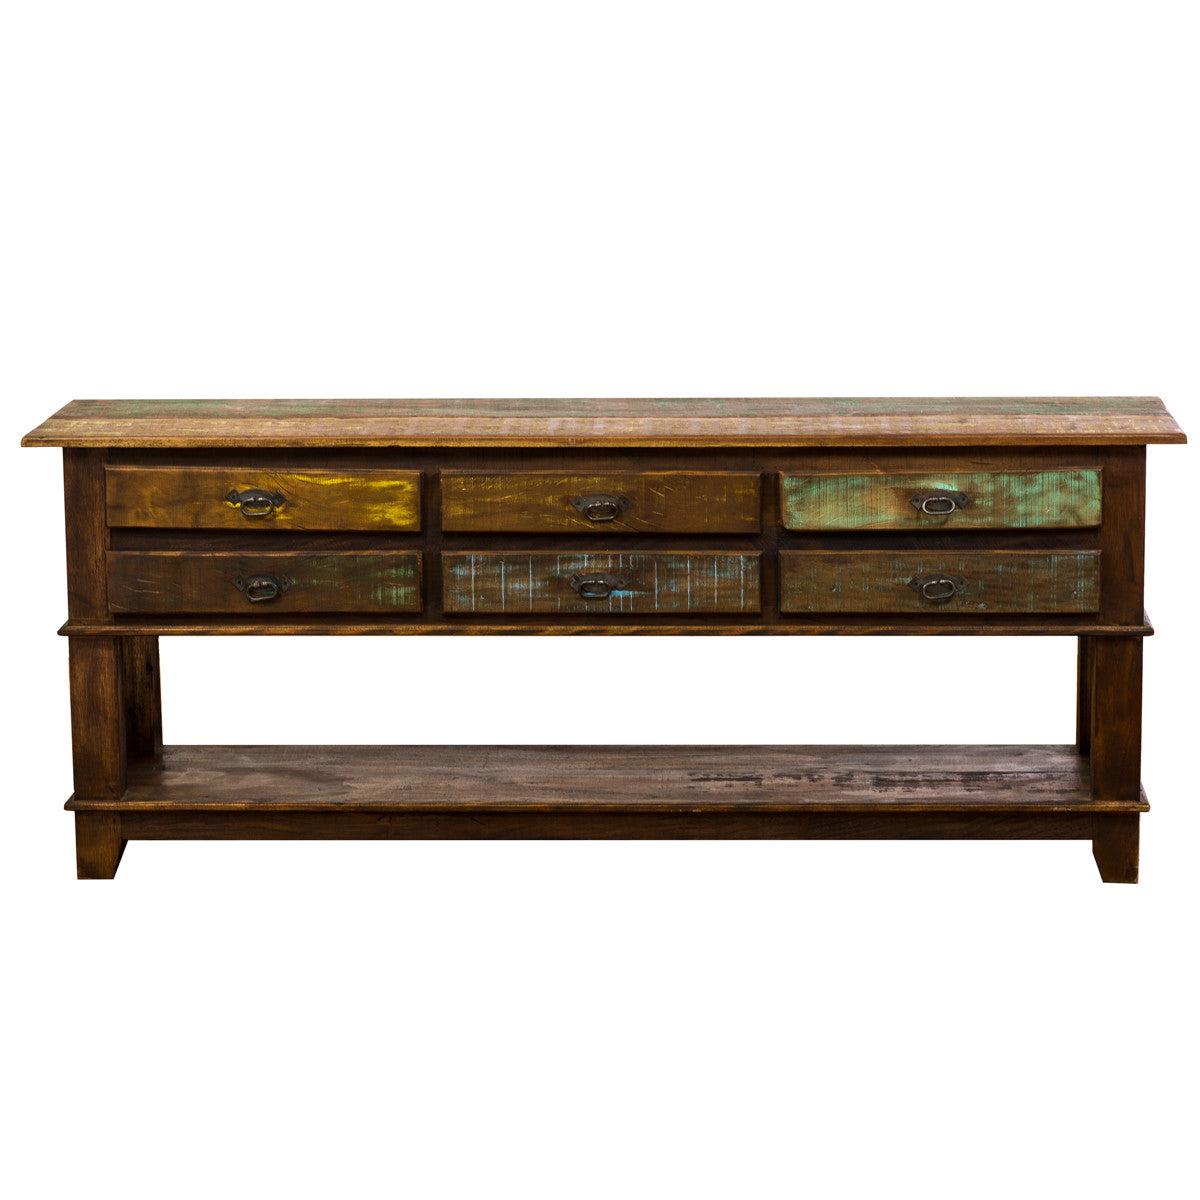 console, console table, sofa table, table, sideboard, reclaimed wood furniture,